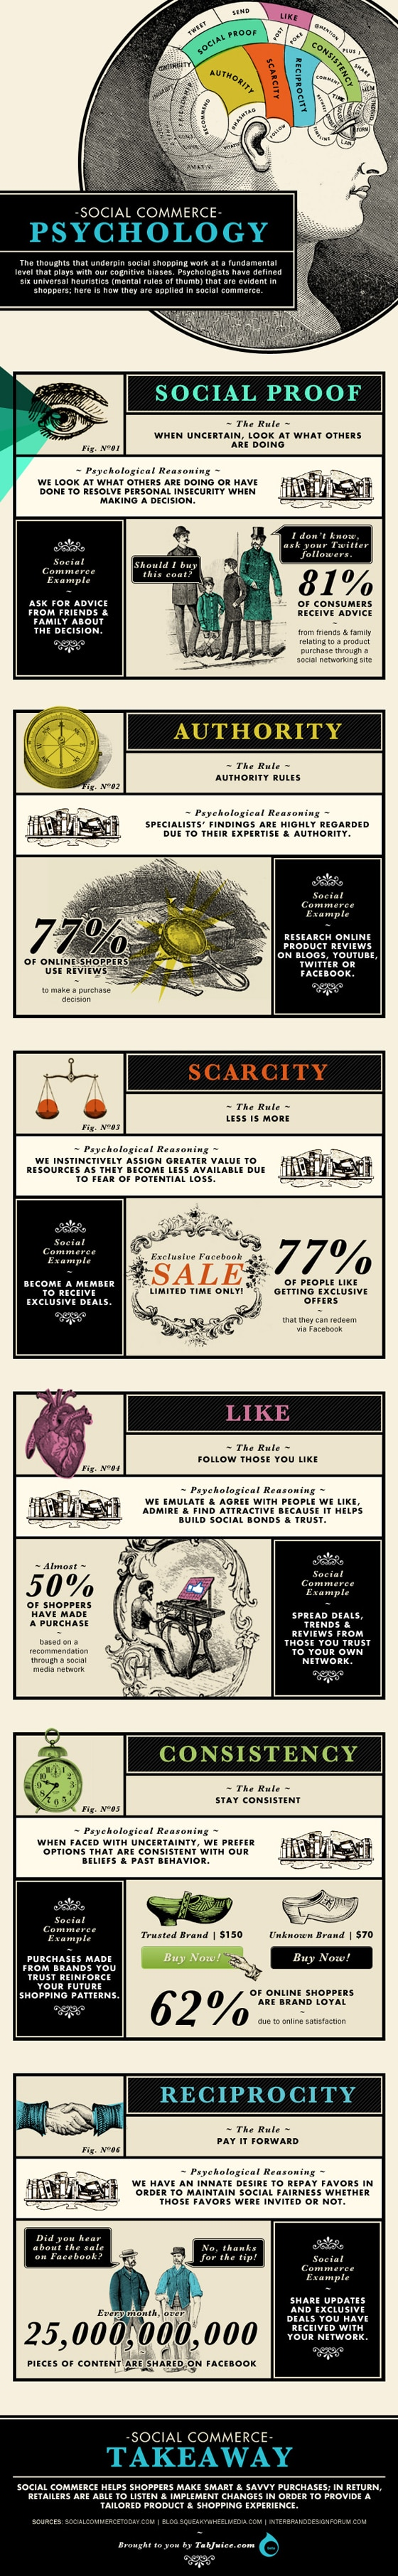 Social-Commerce-Psychology-Infographic